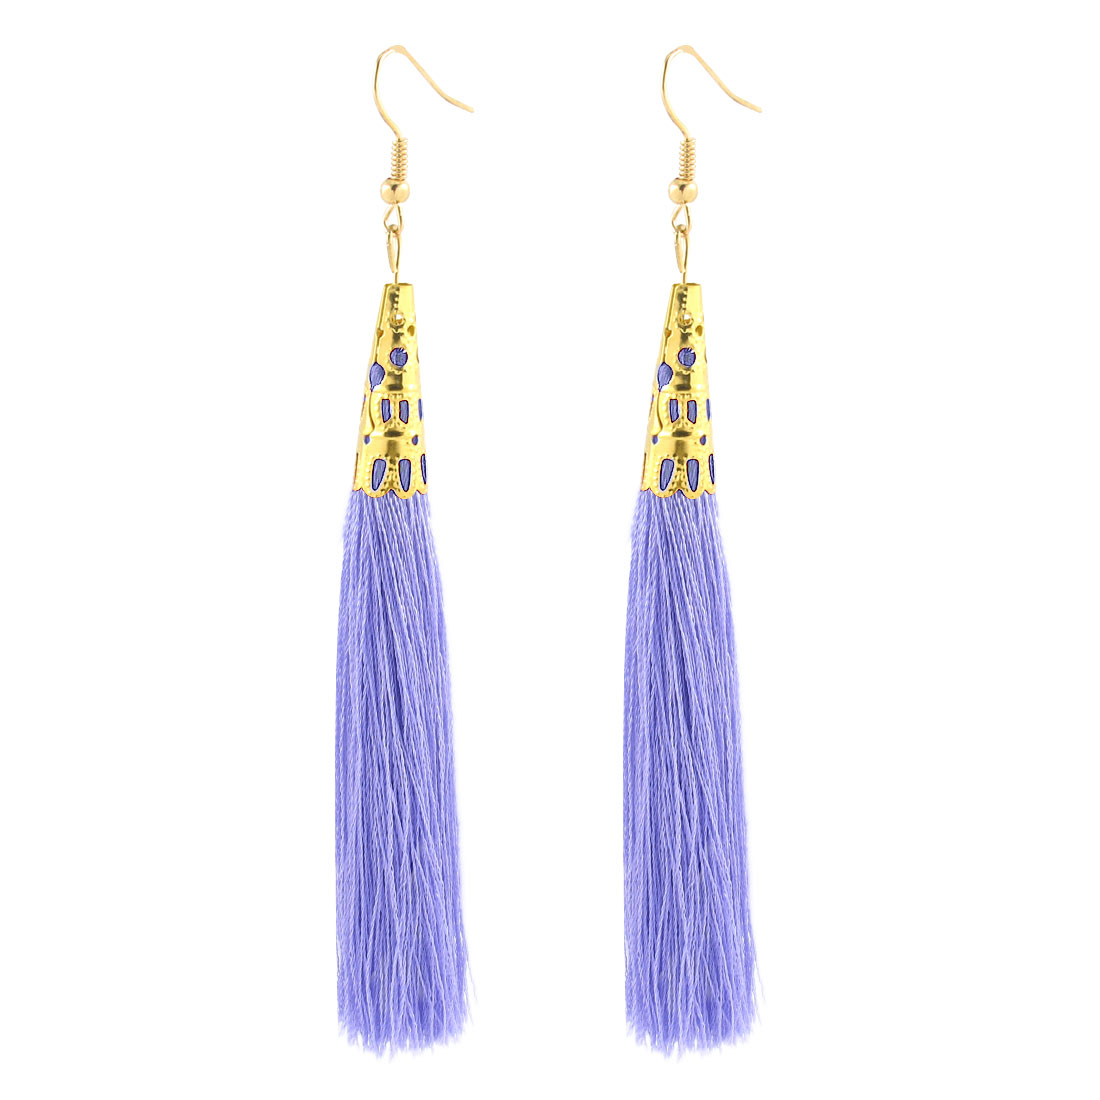 Lady Long Tassel Dangle Hook Earrings Charm Hanging Ornament Pair Light Purple